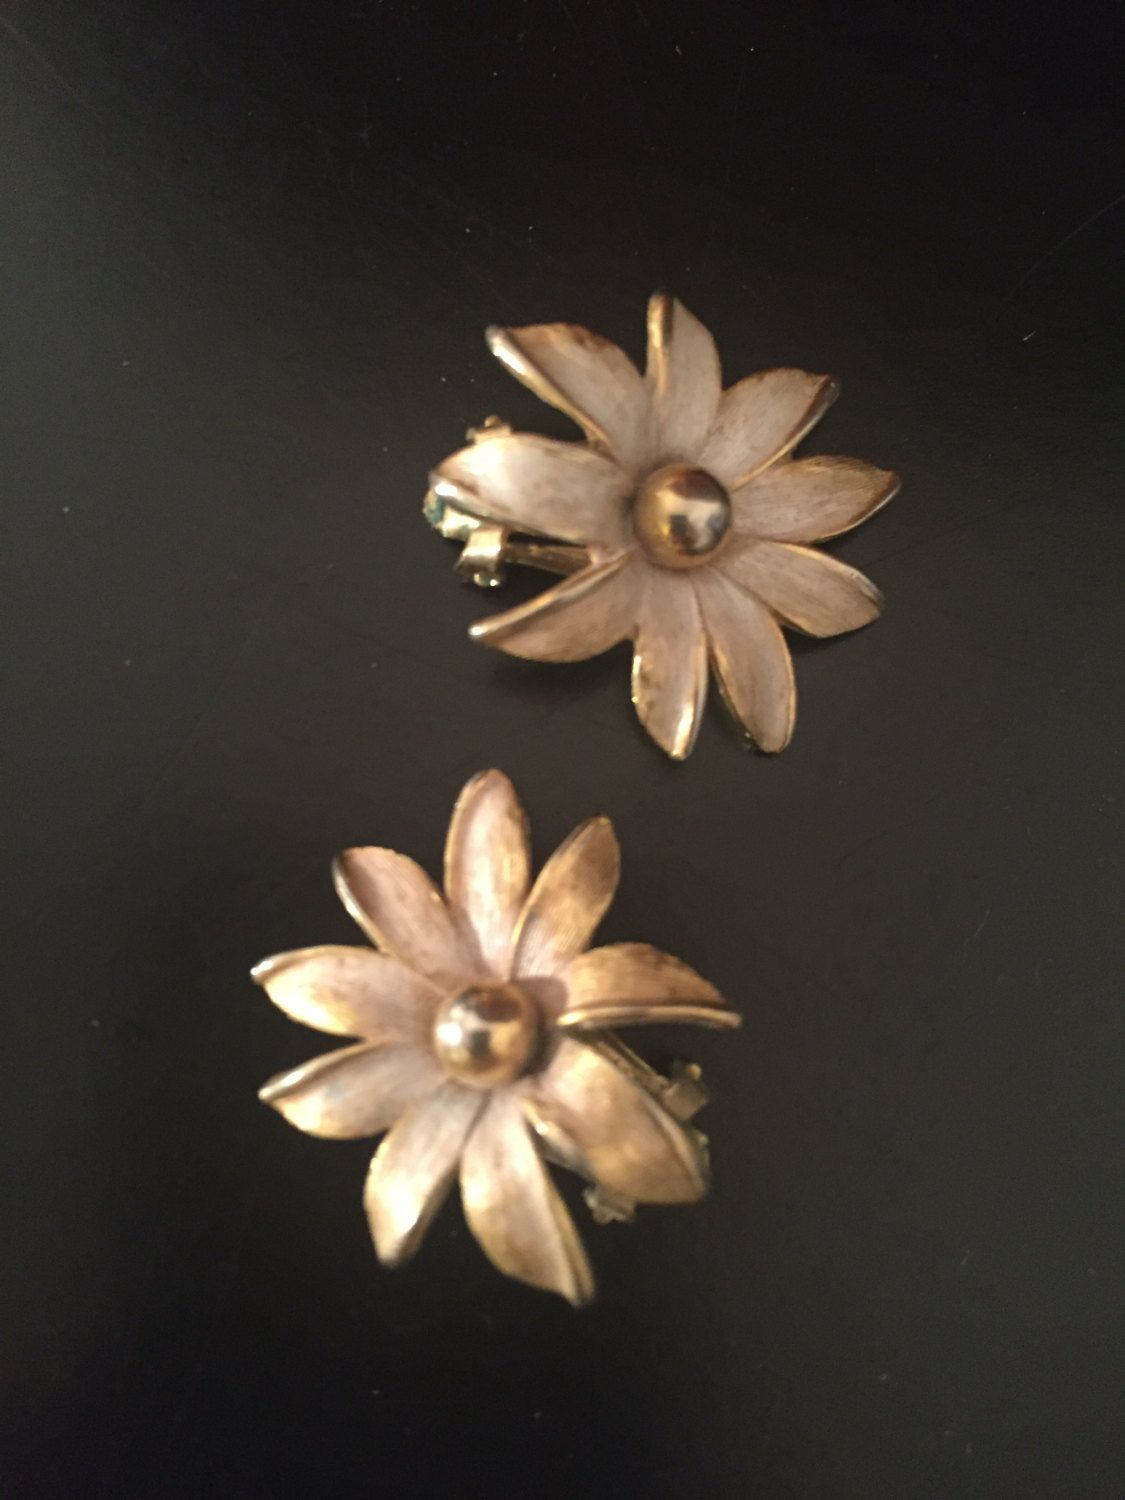 Vintage Daisy Earrings Circa 1950 by VicioVintageGoods on Etsy https://www.etsy.com/listing/257381281/vintage-daisy-earrings-circa-1950